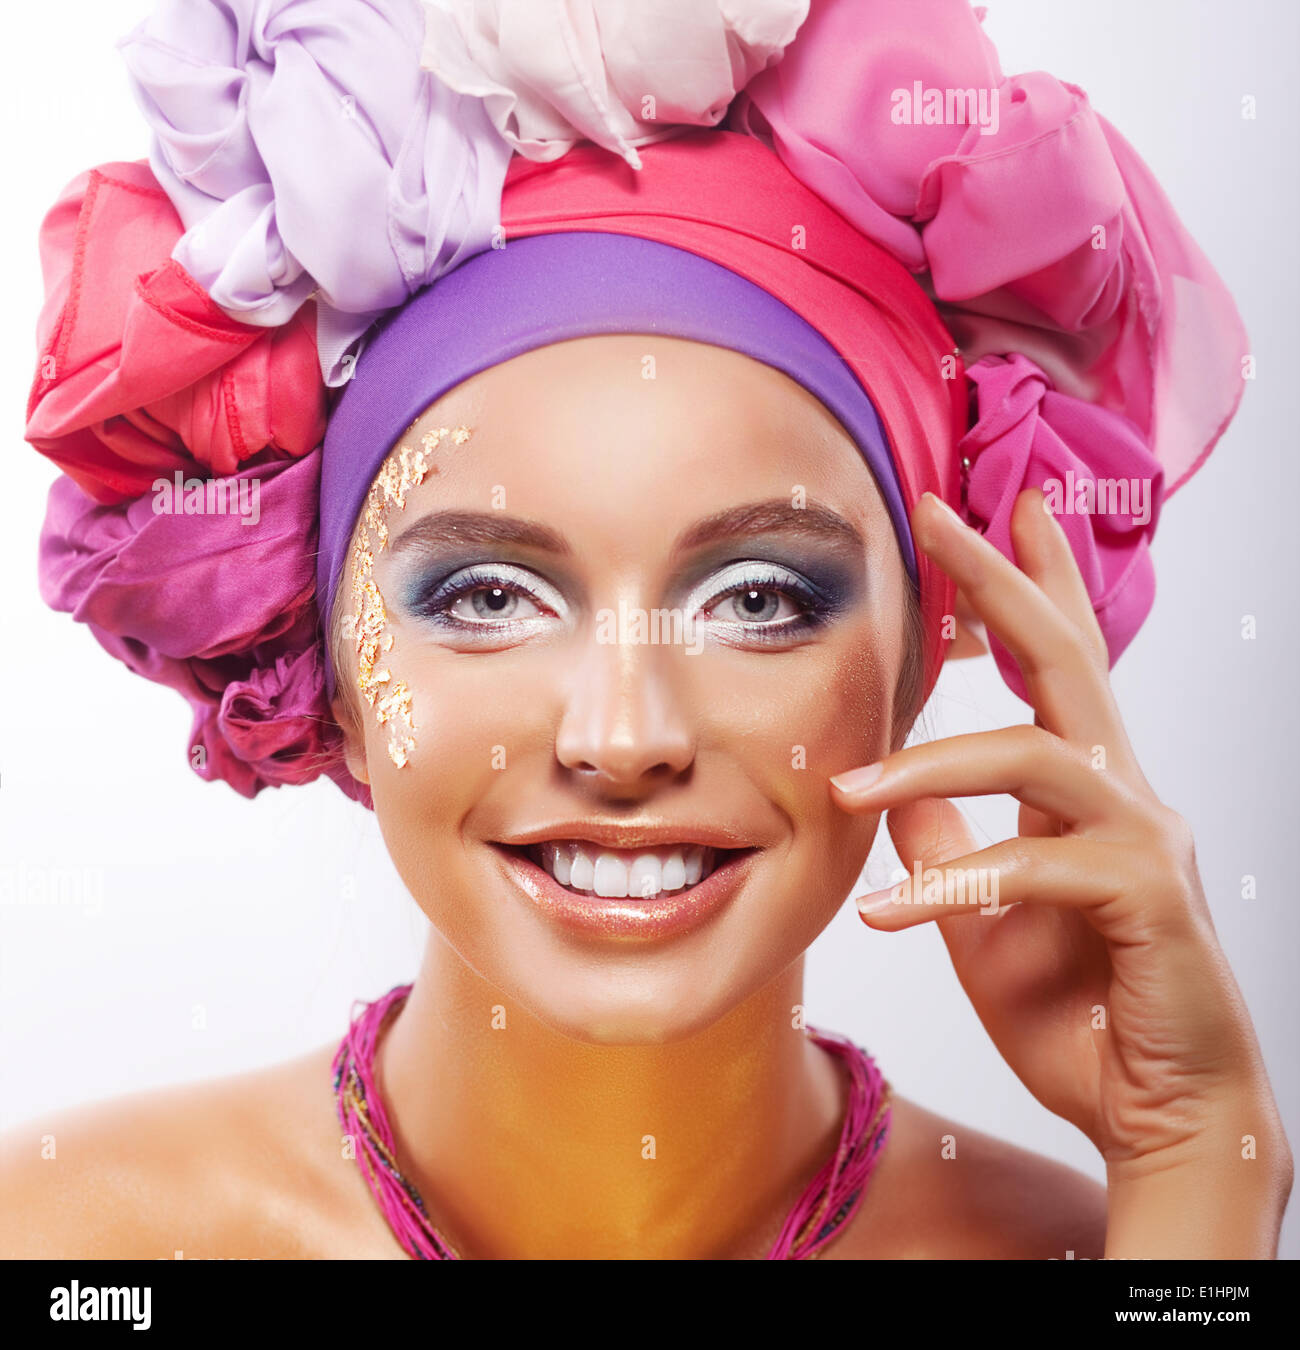 Lifestyle. Beauty. Portrait of young happy toothy smiling woman in colorful headwear - Stock Image